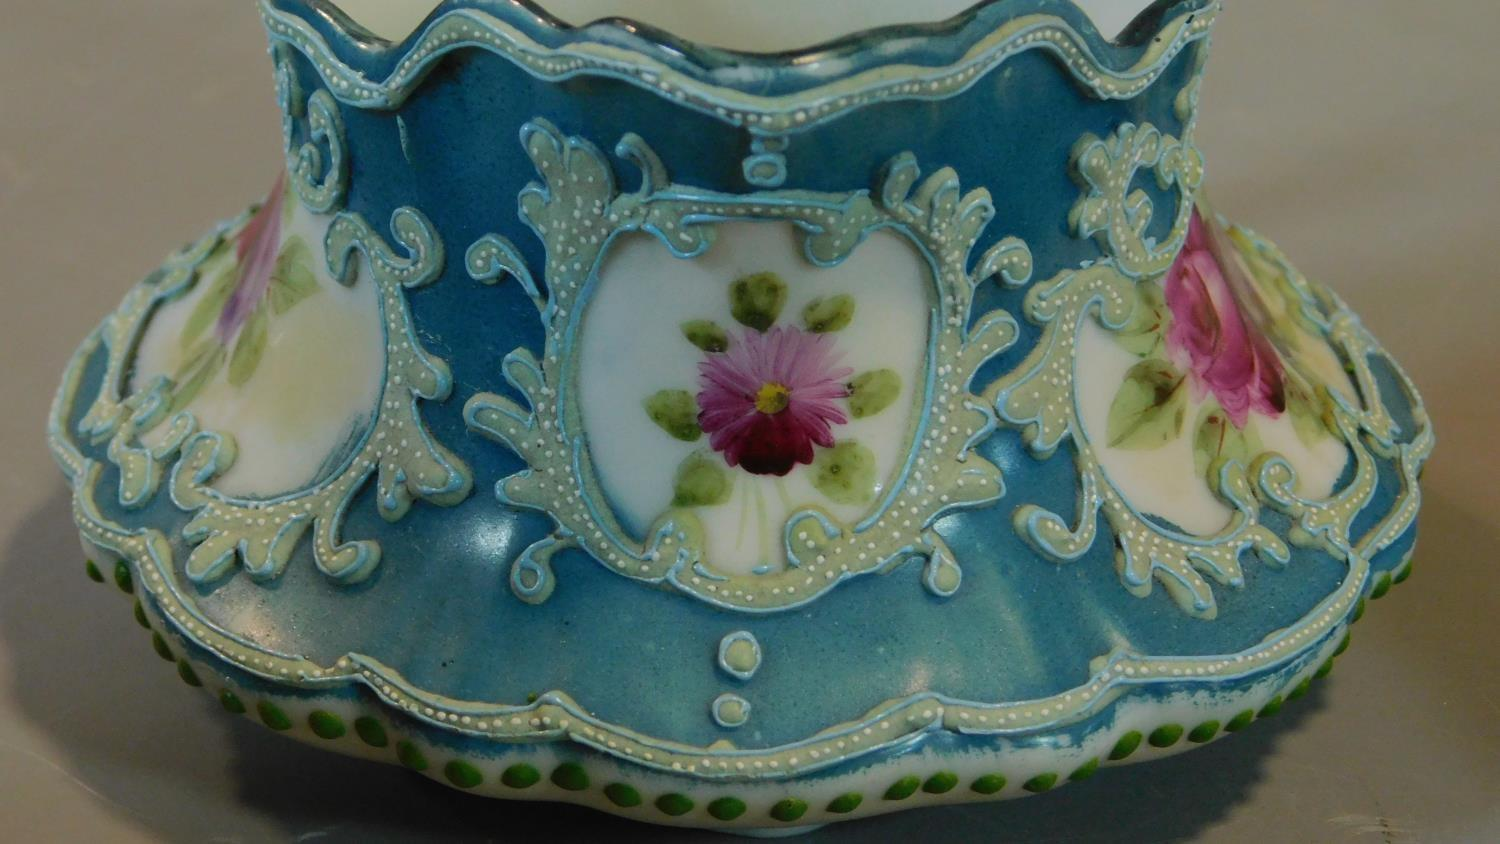 A miscellaneous collection of Victorian and later porcelain, vase, cups, saucers etc. - Image 6 of 14